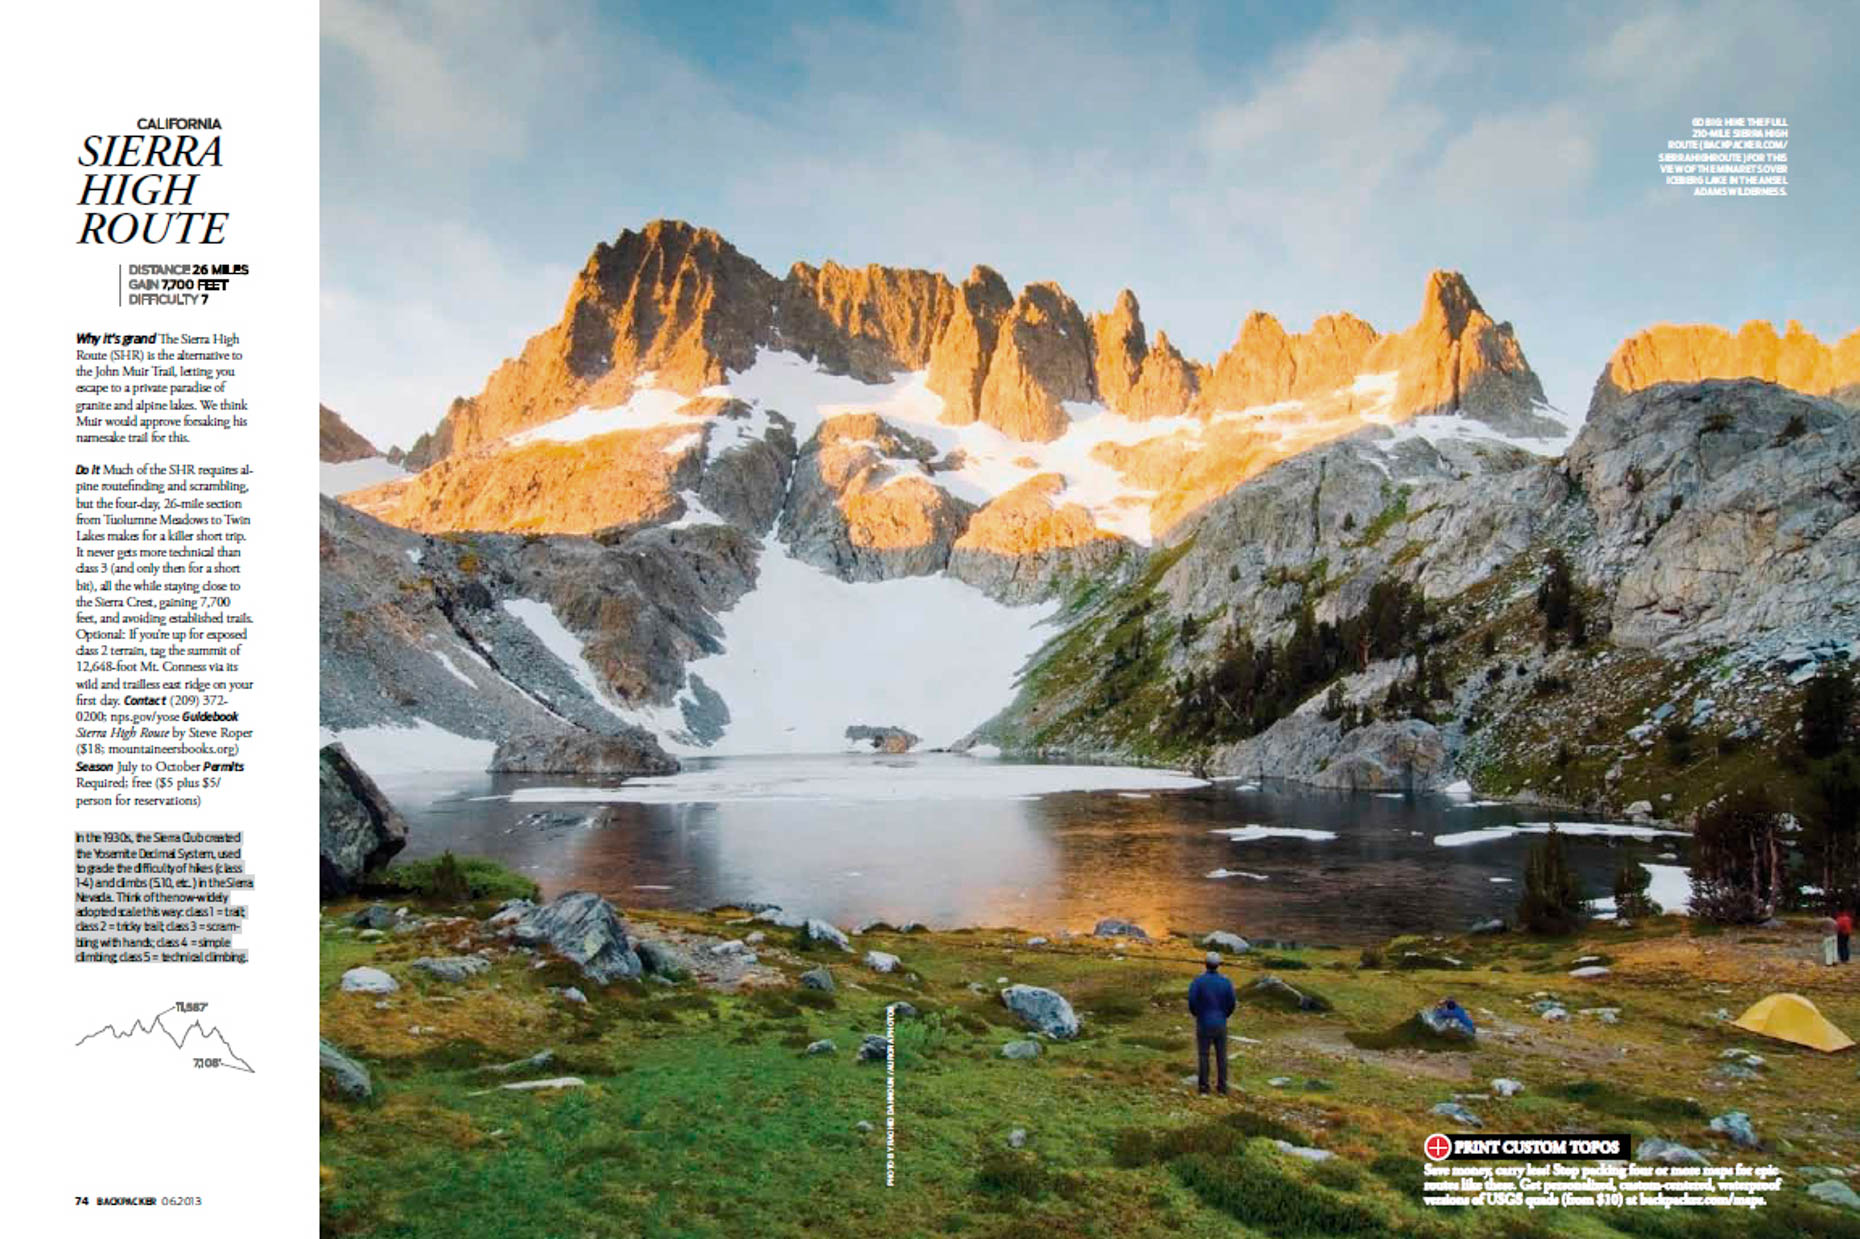 Backpacker Magazine - The Sierra High Route, California